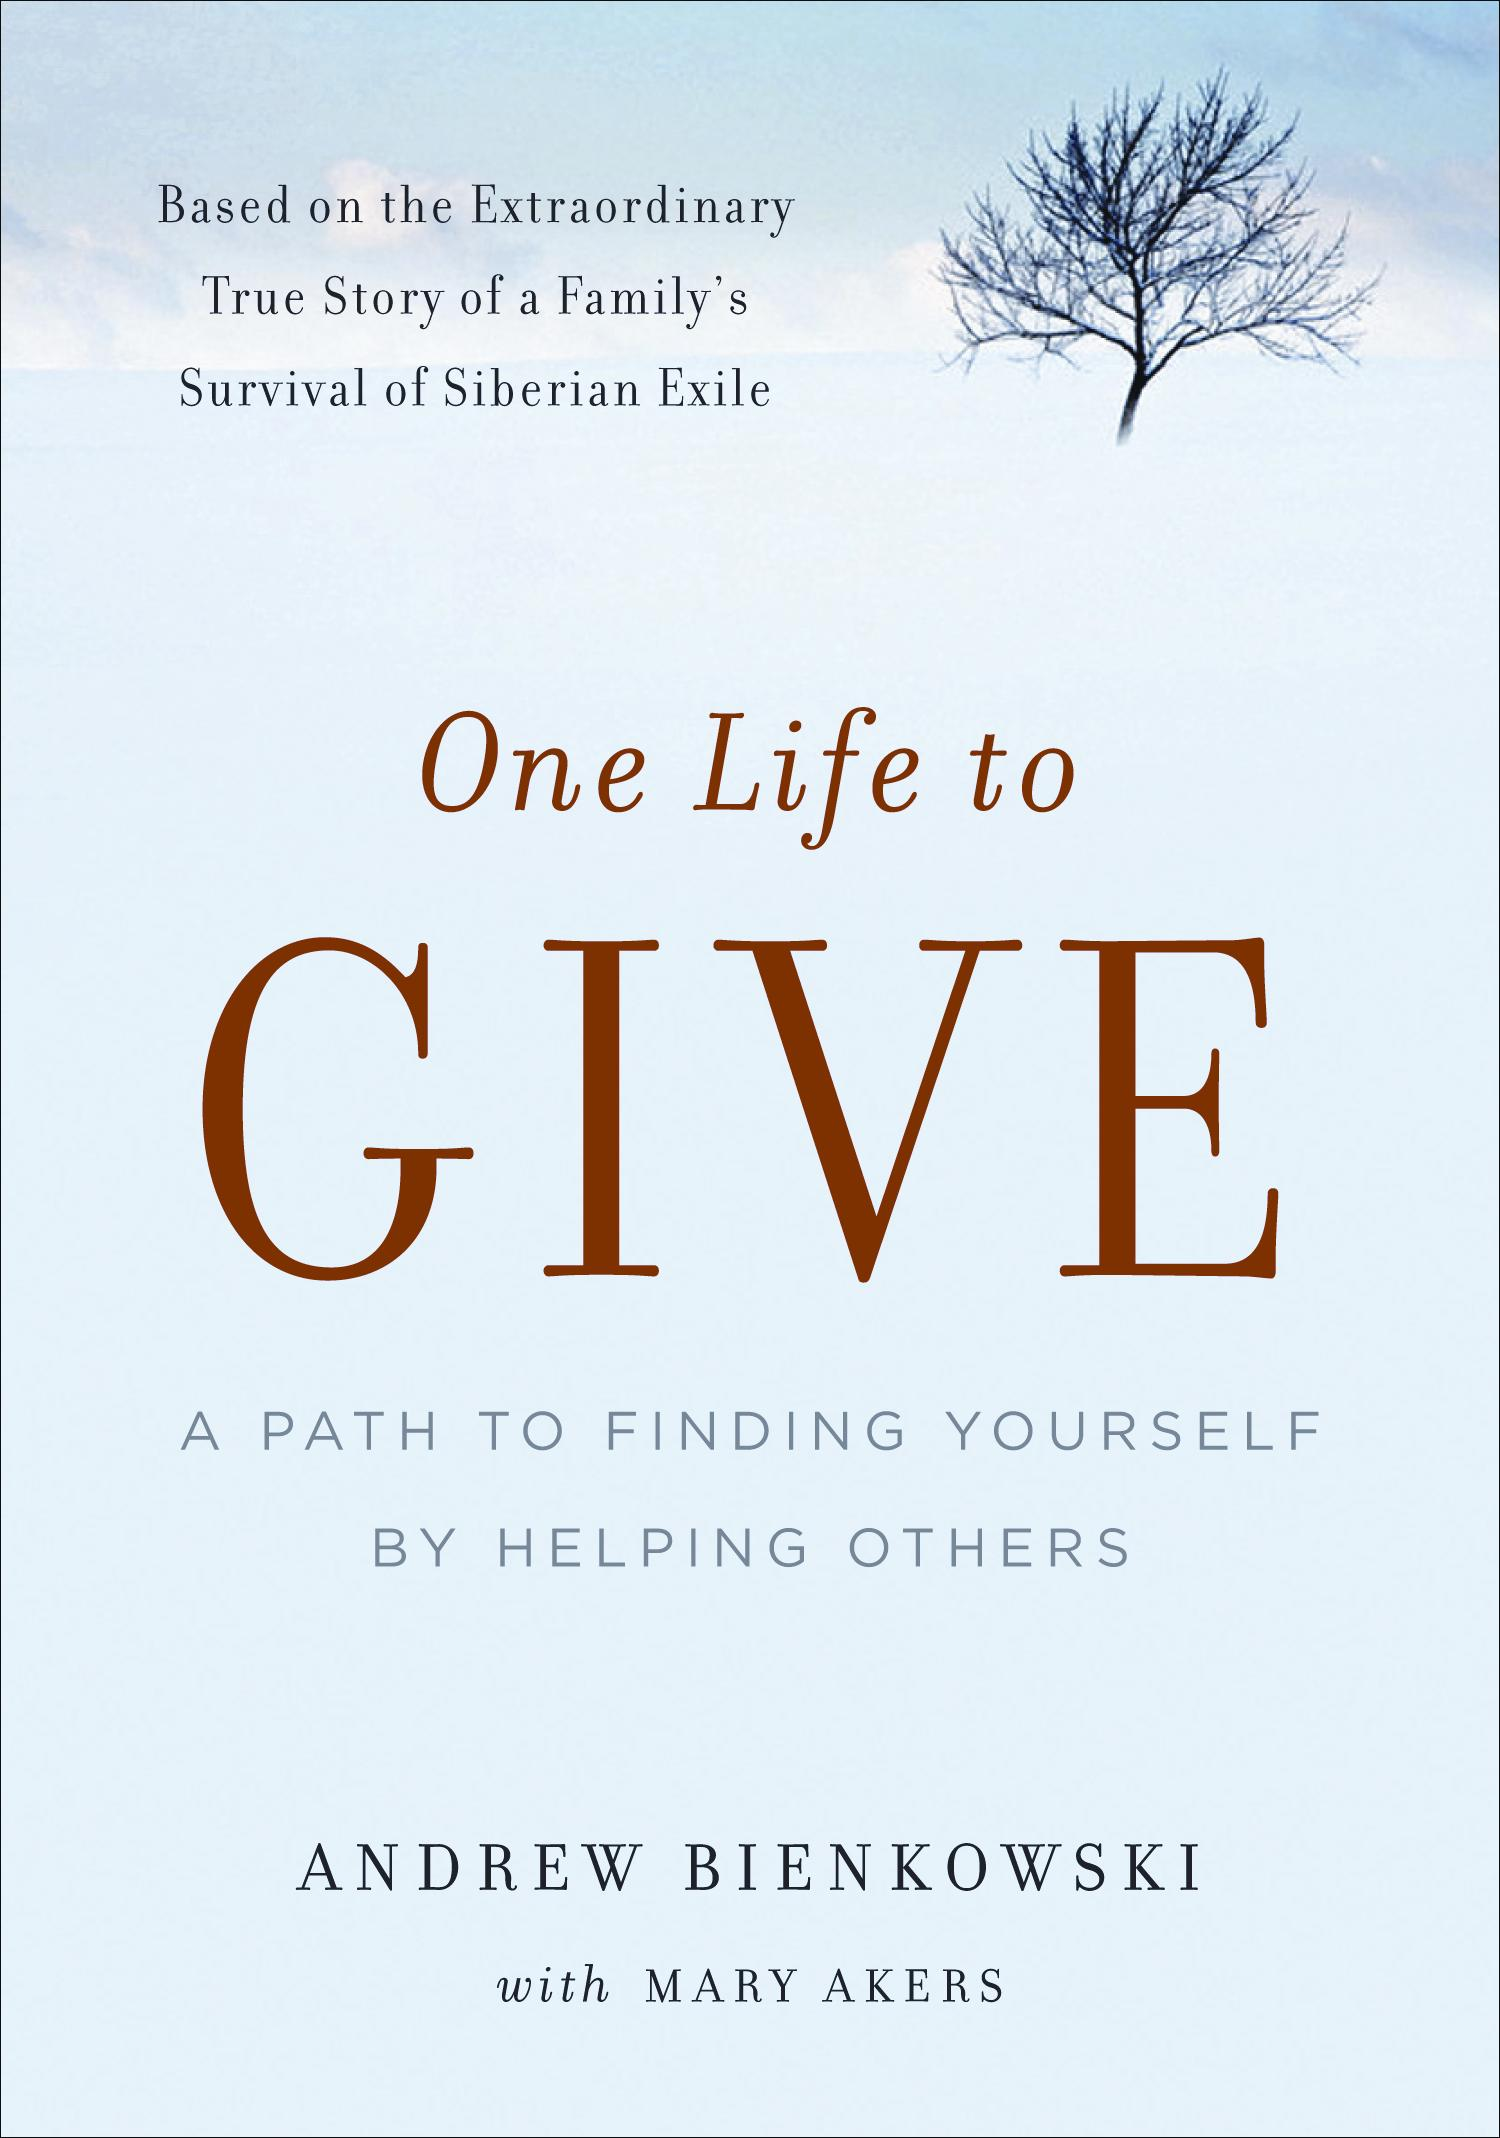 ONE LIFE TO GIVE   Memoir, 254 pages The Experiment, January 1, 2010  Andrew Bienkowski was six when his family were exiled to Siberia in 1940. Warmed by the beautiful landscape and the kindness of strangers, Andrew's harrowing but magical childhood experiences had a profound effect on his life.